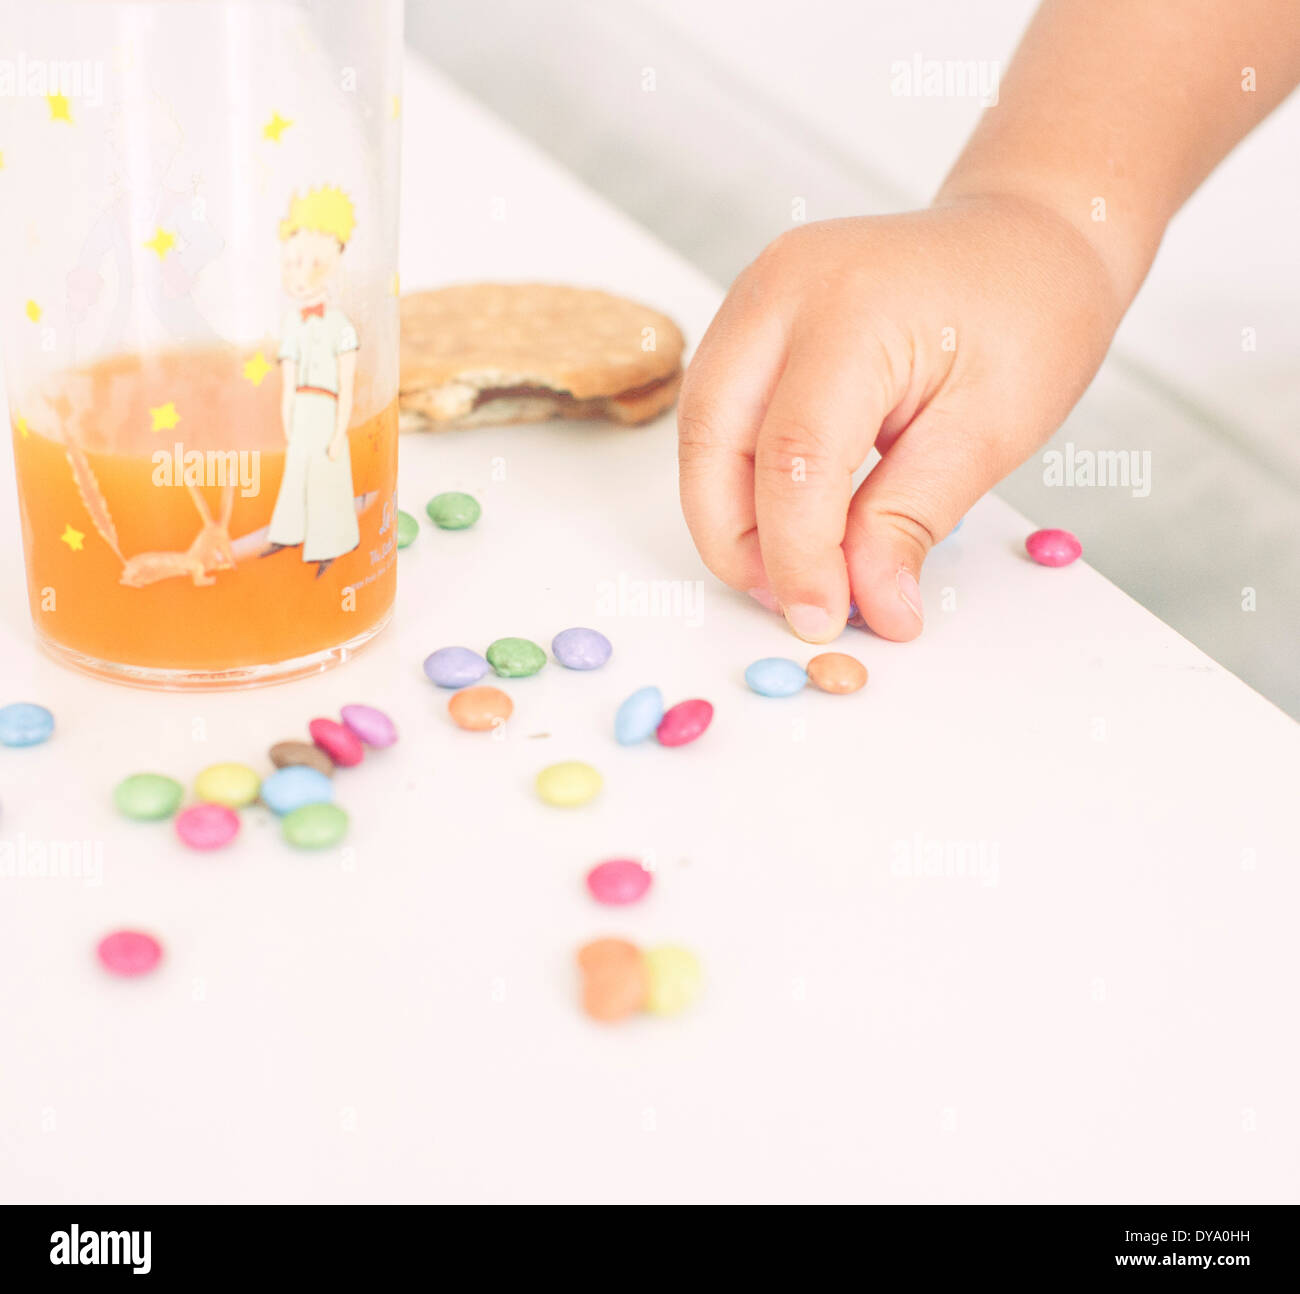 Child picking up candies from table - Stock Image